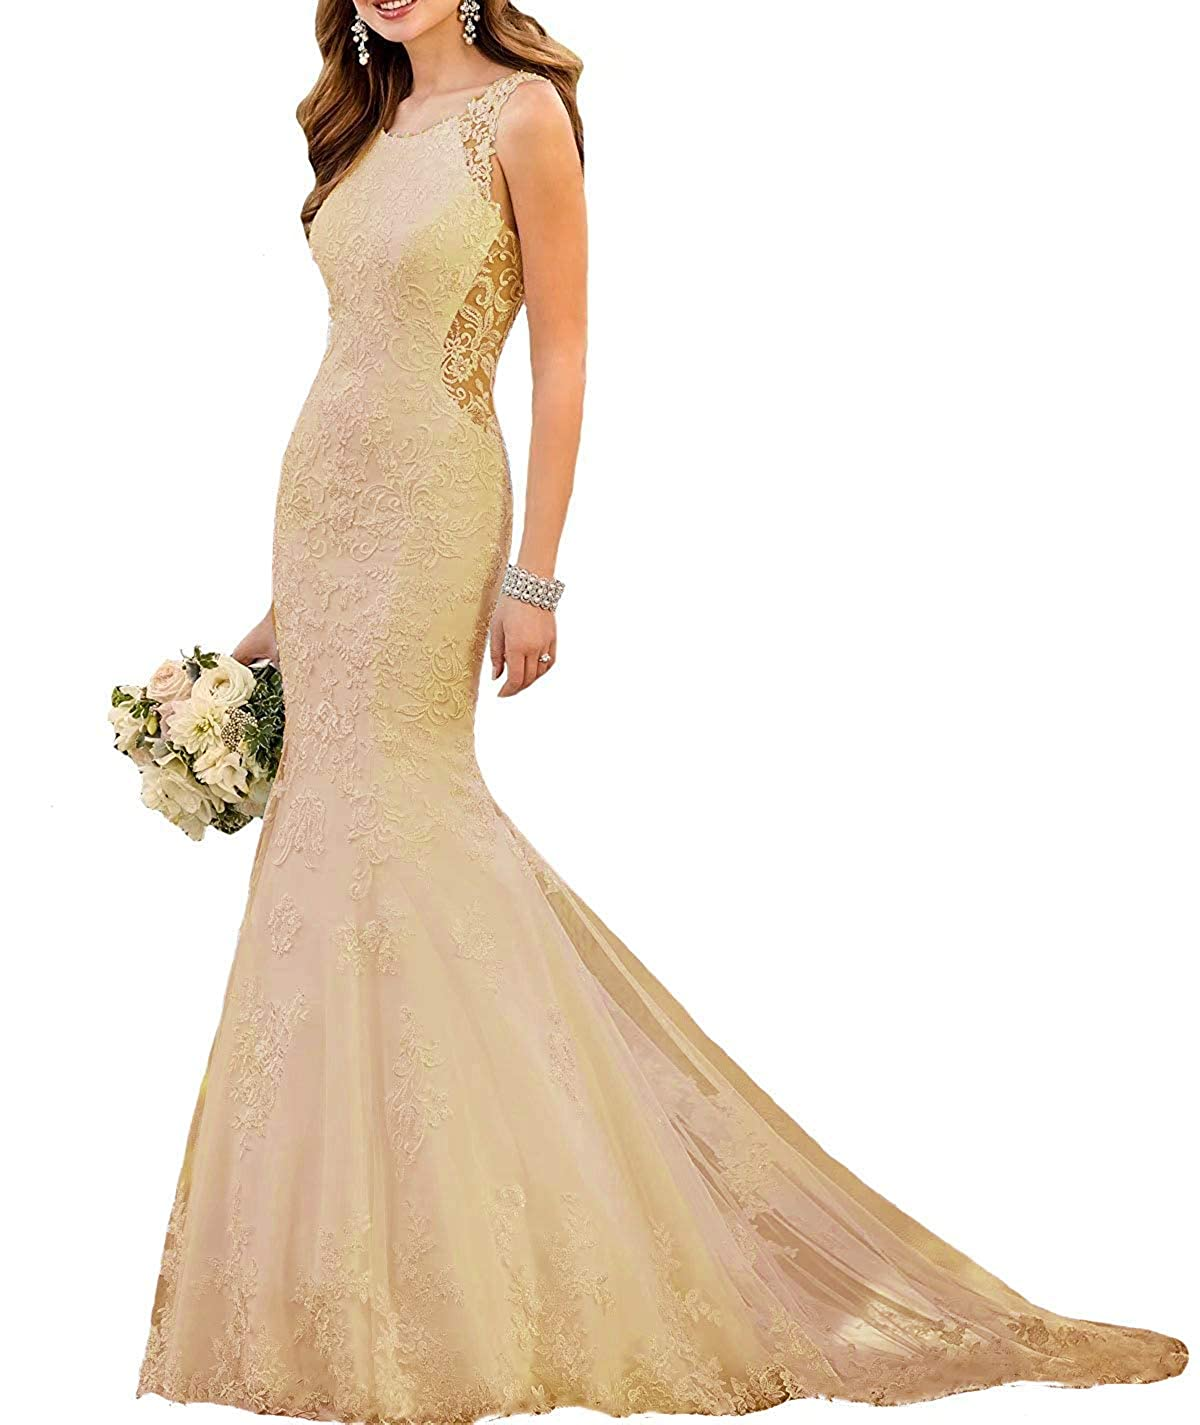 Champagne Staypretty Wedding Dresses Mermaid Applique Tulle Scoop Neck Sleeveless Bridal Gowns